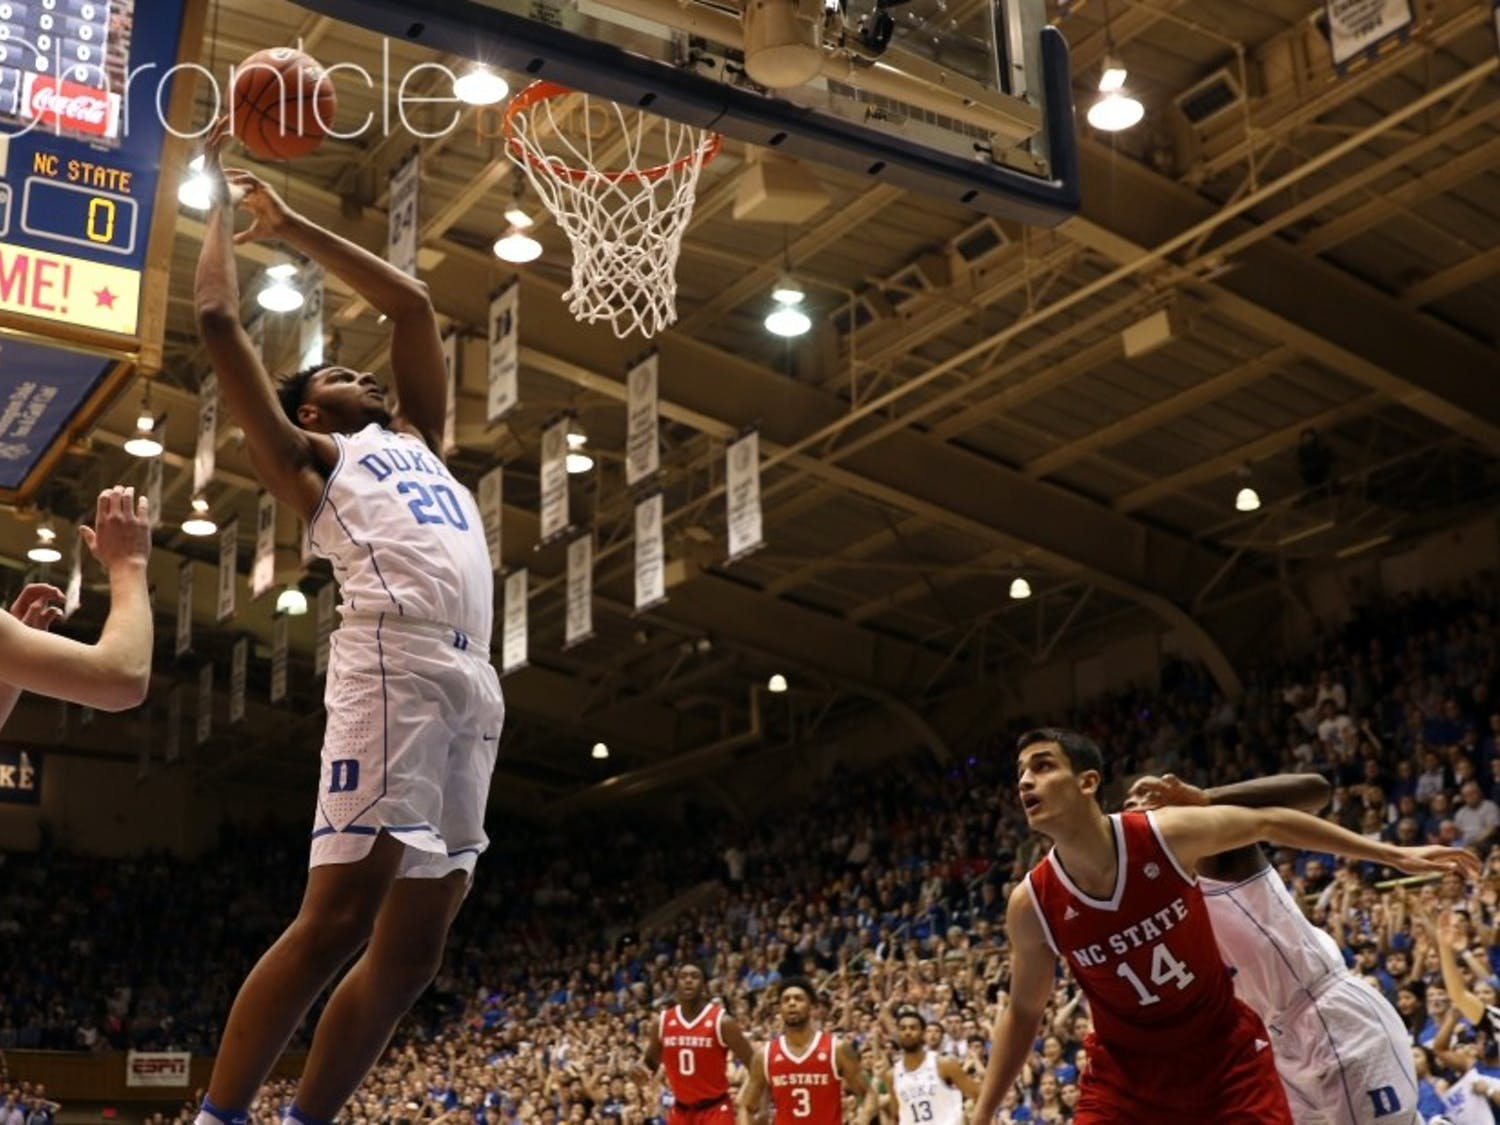 According to multiple reports, Marques Bolden will become Duke's third transfer this offseason.